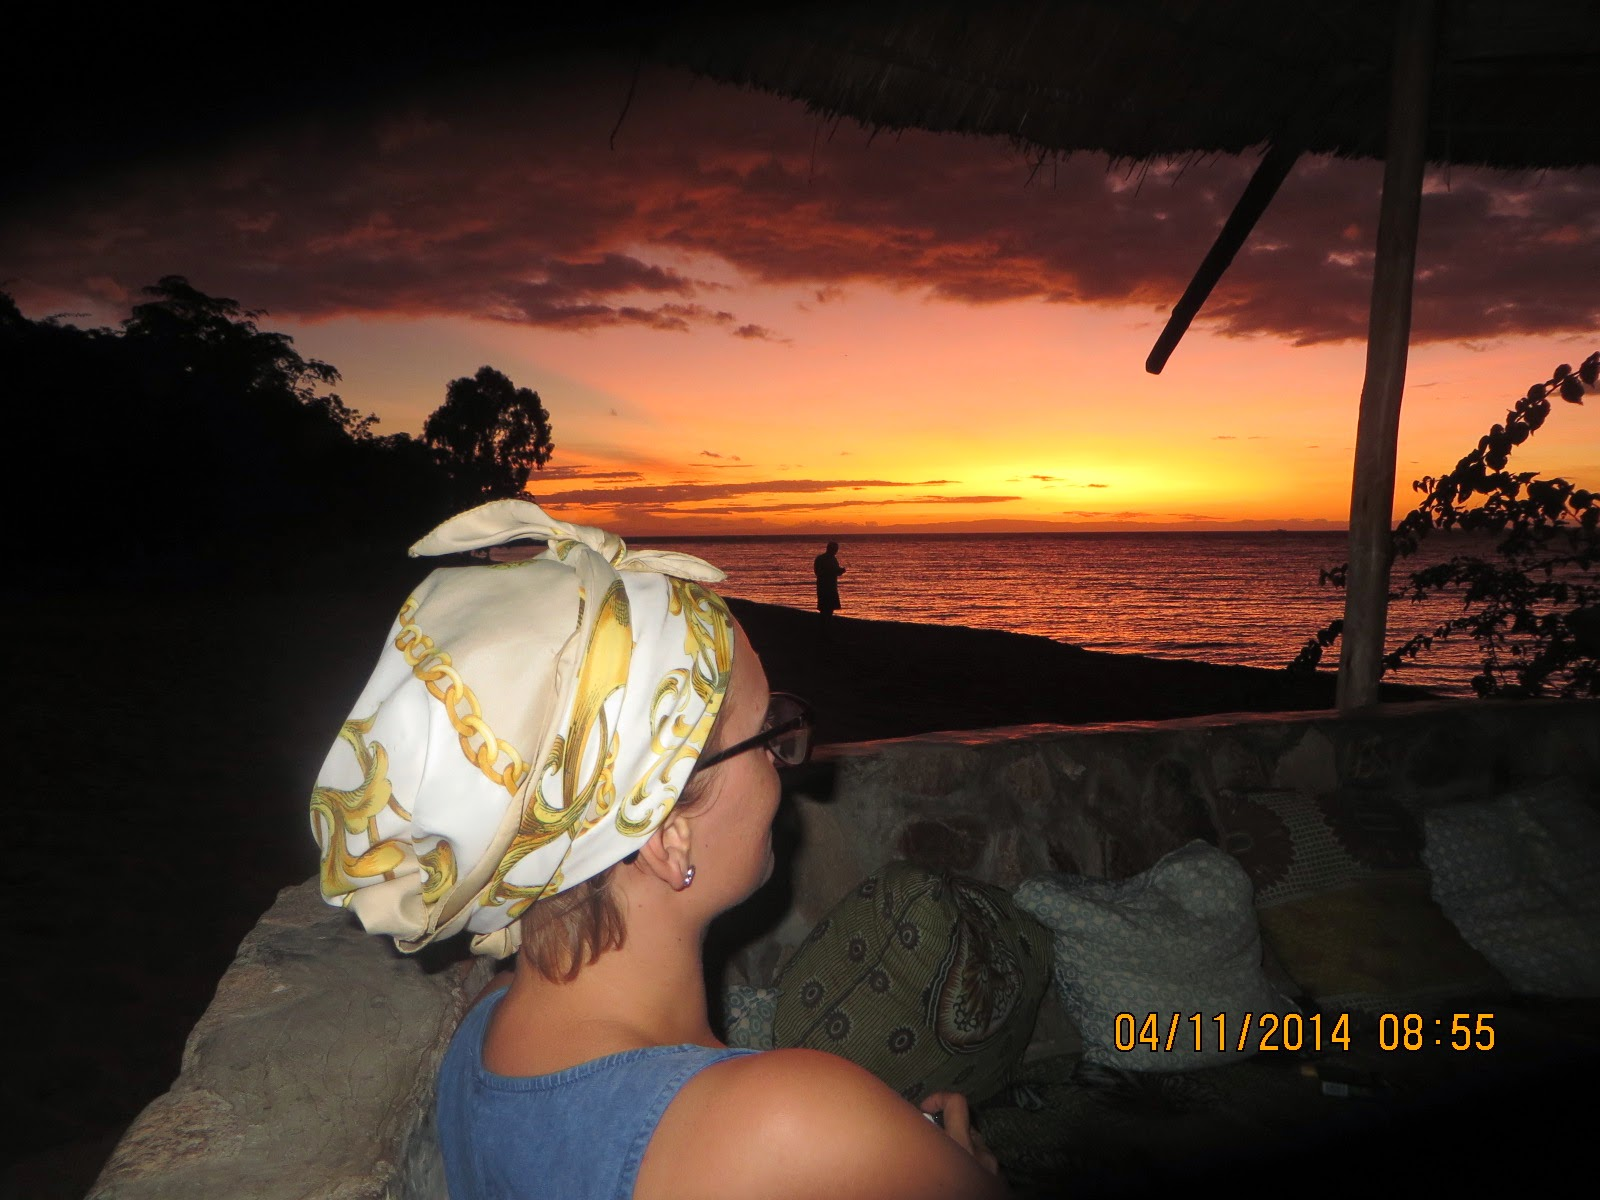 Cille, a Norwegian NGO worker in Malawi, taking in sunset at Mango Drift, Likoma Island, Malawi